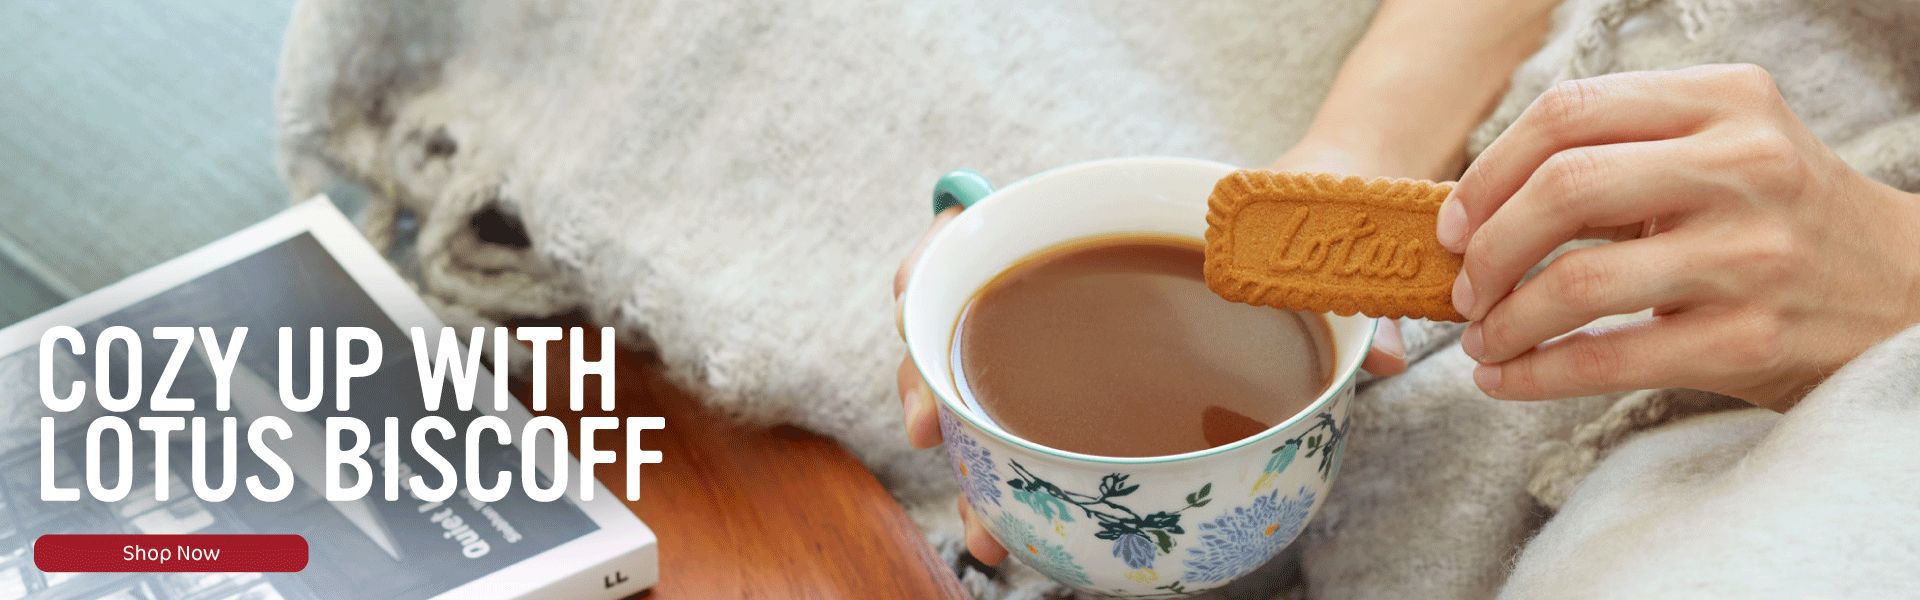 Cozy up with Lotus Biscoff